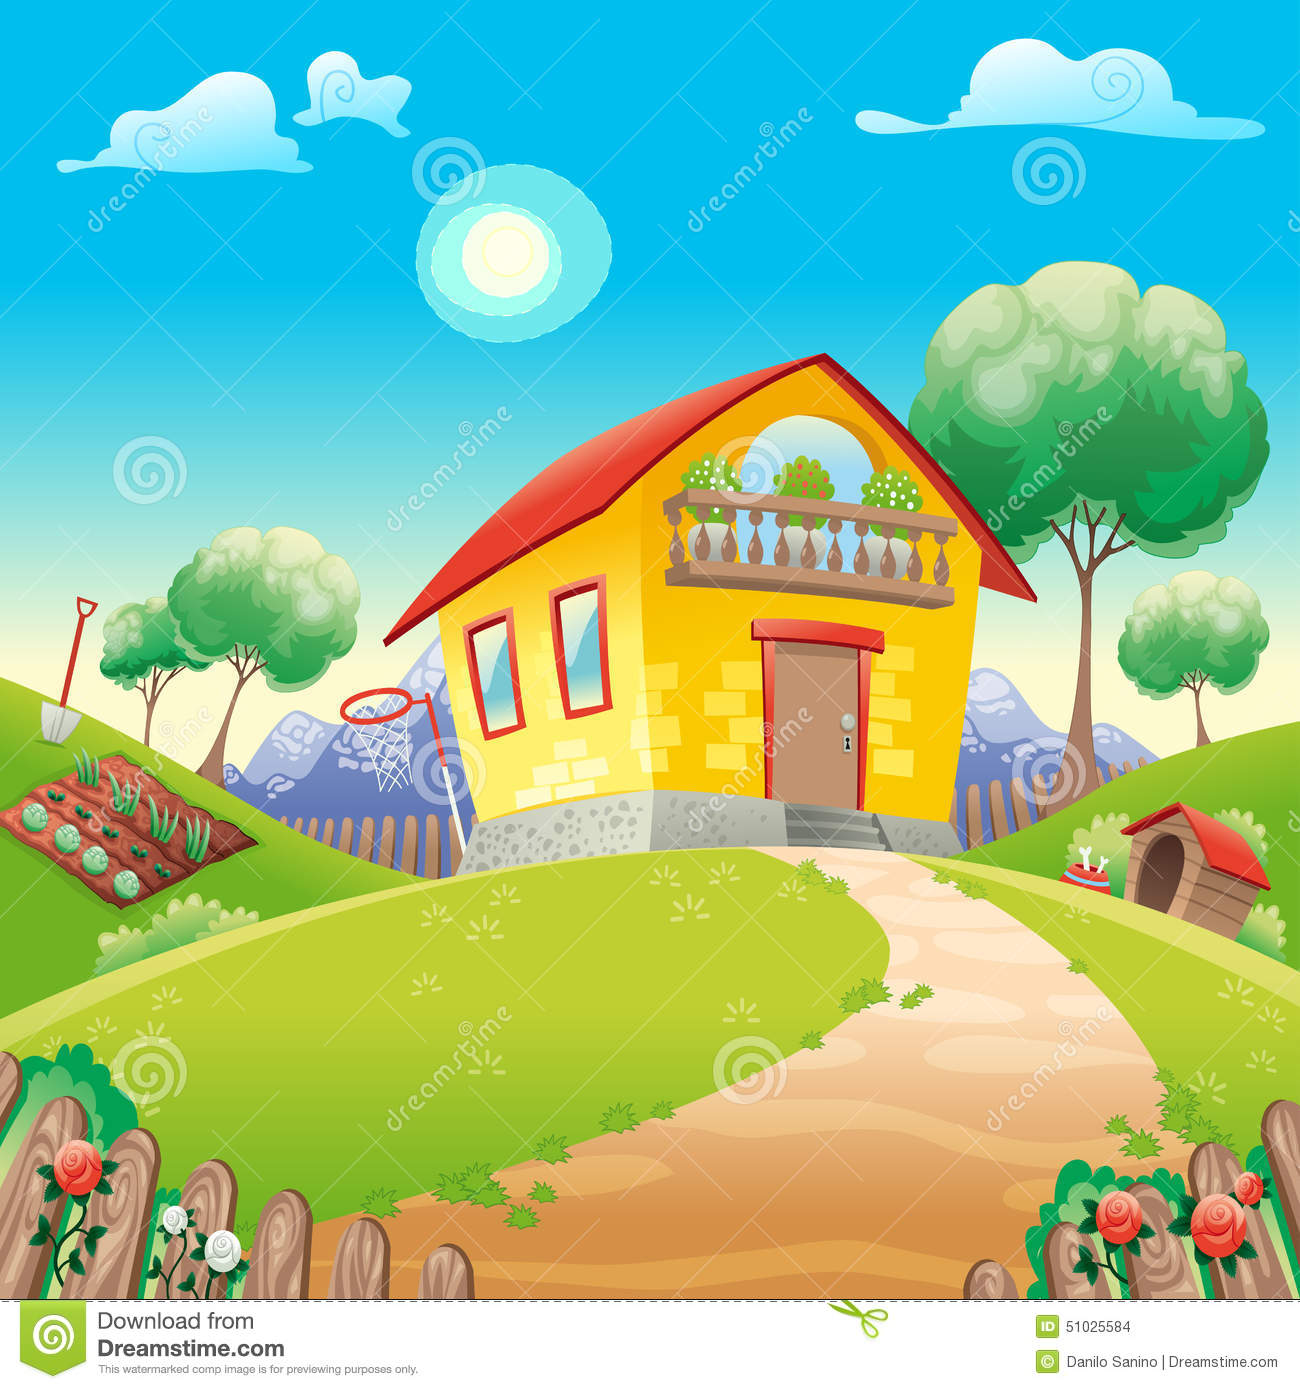 House With Garden Int The Countryside Stock Vector Image